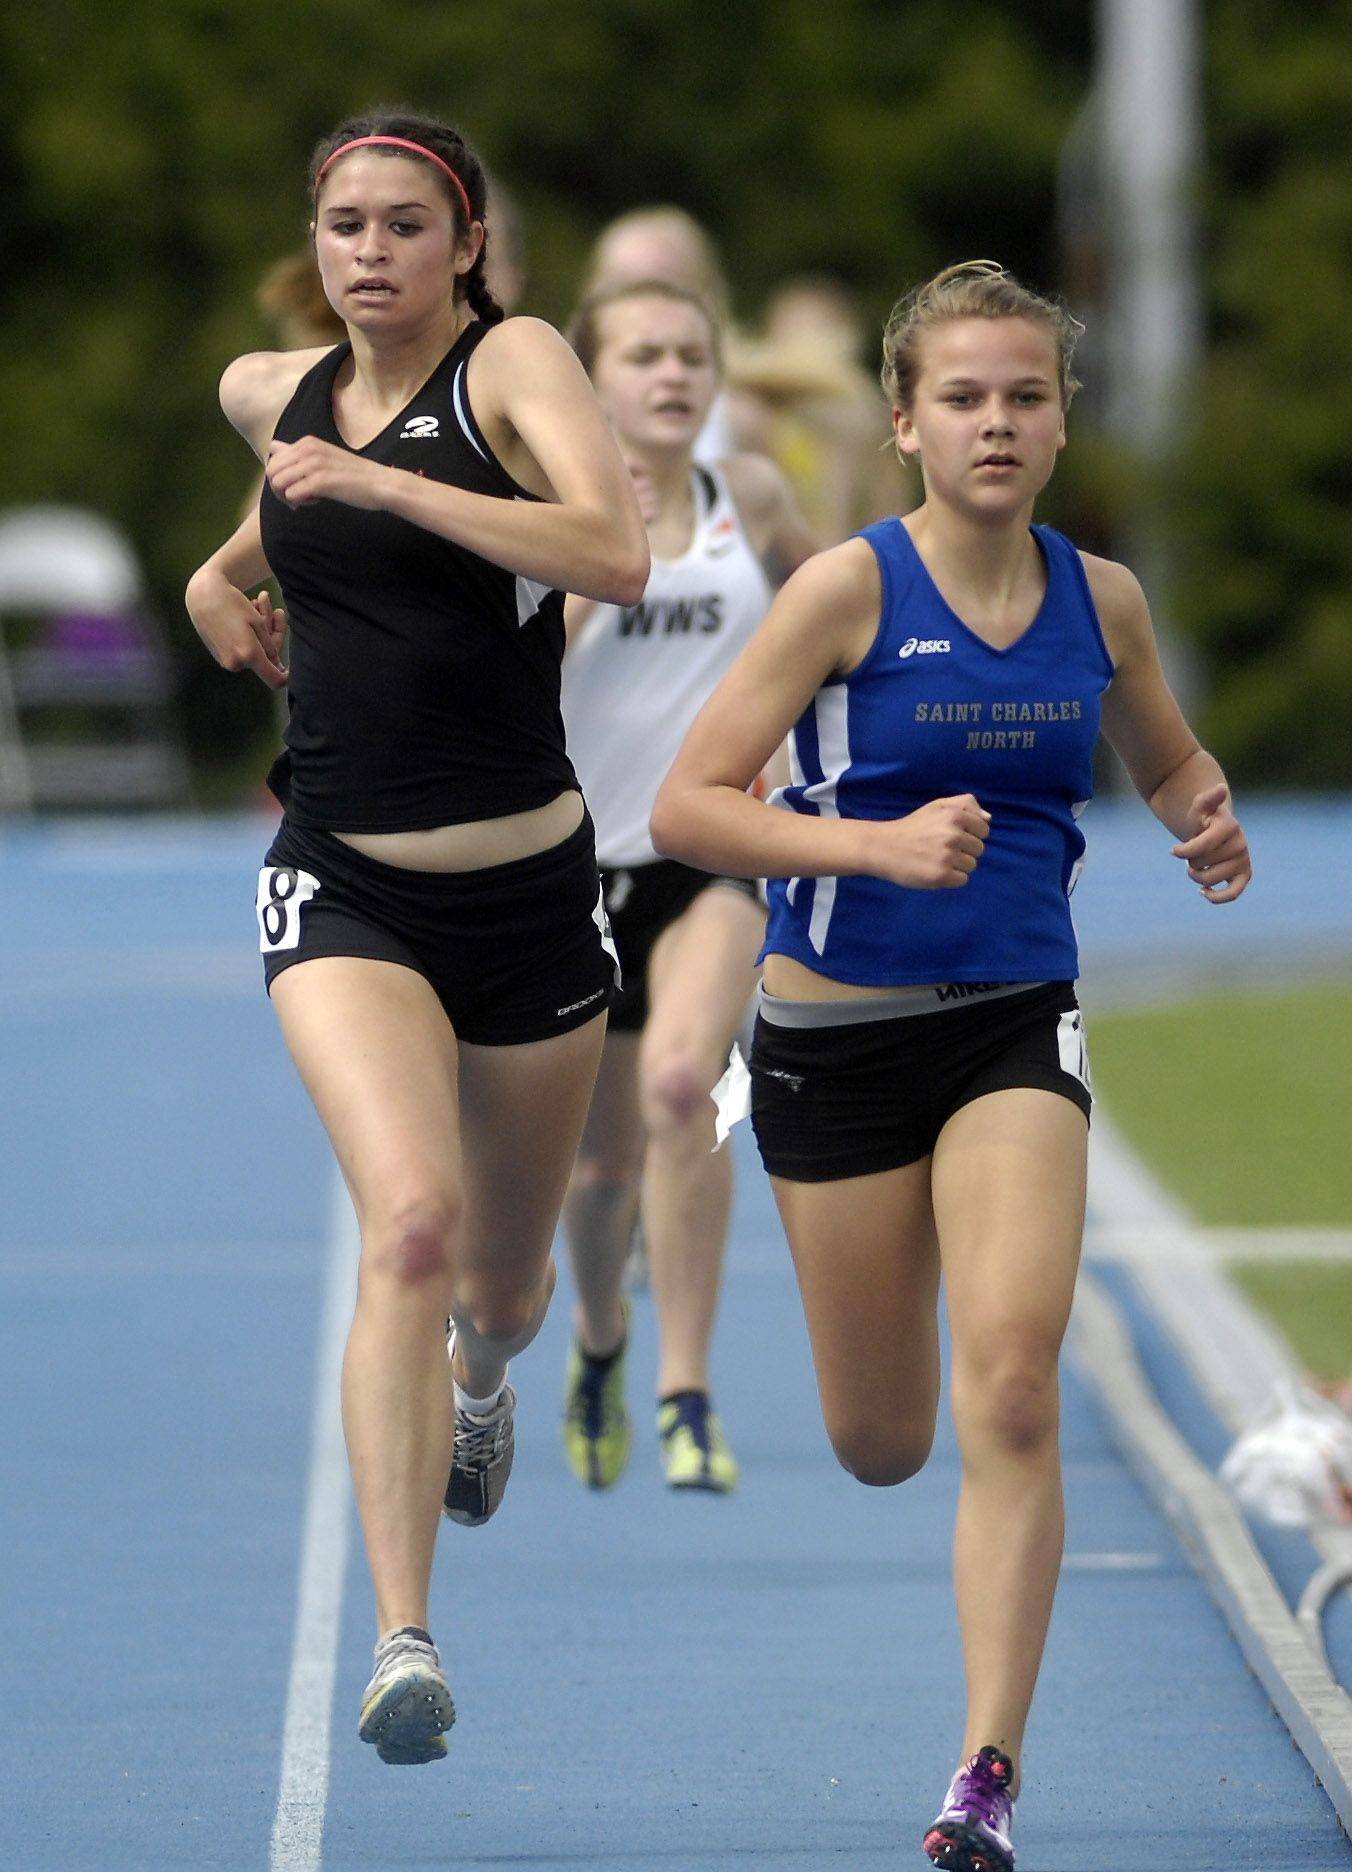 Huntley's Haley Loprieno and St. Charles North's Sydney Stuenkel are shoulder to shoulder down the stretch of the 1600 during Friday's preliminaries of the IHSA girls state track finals.